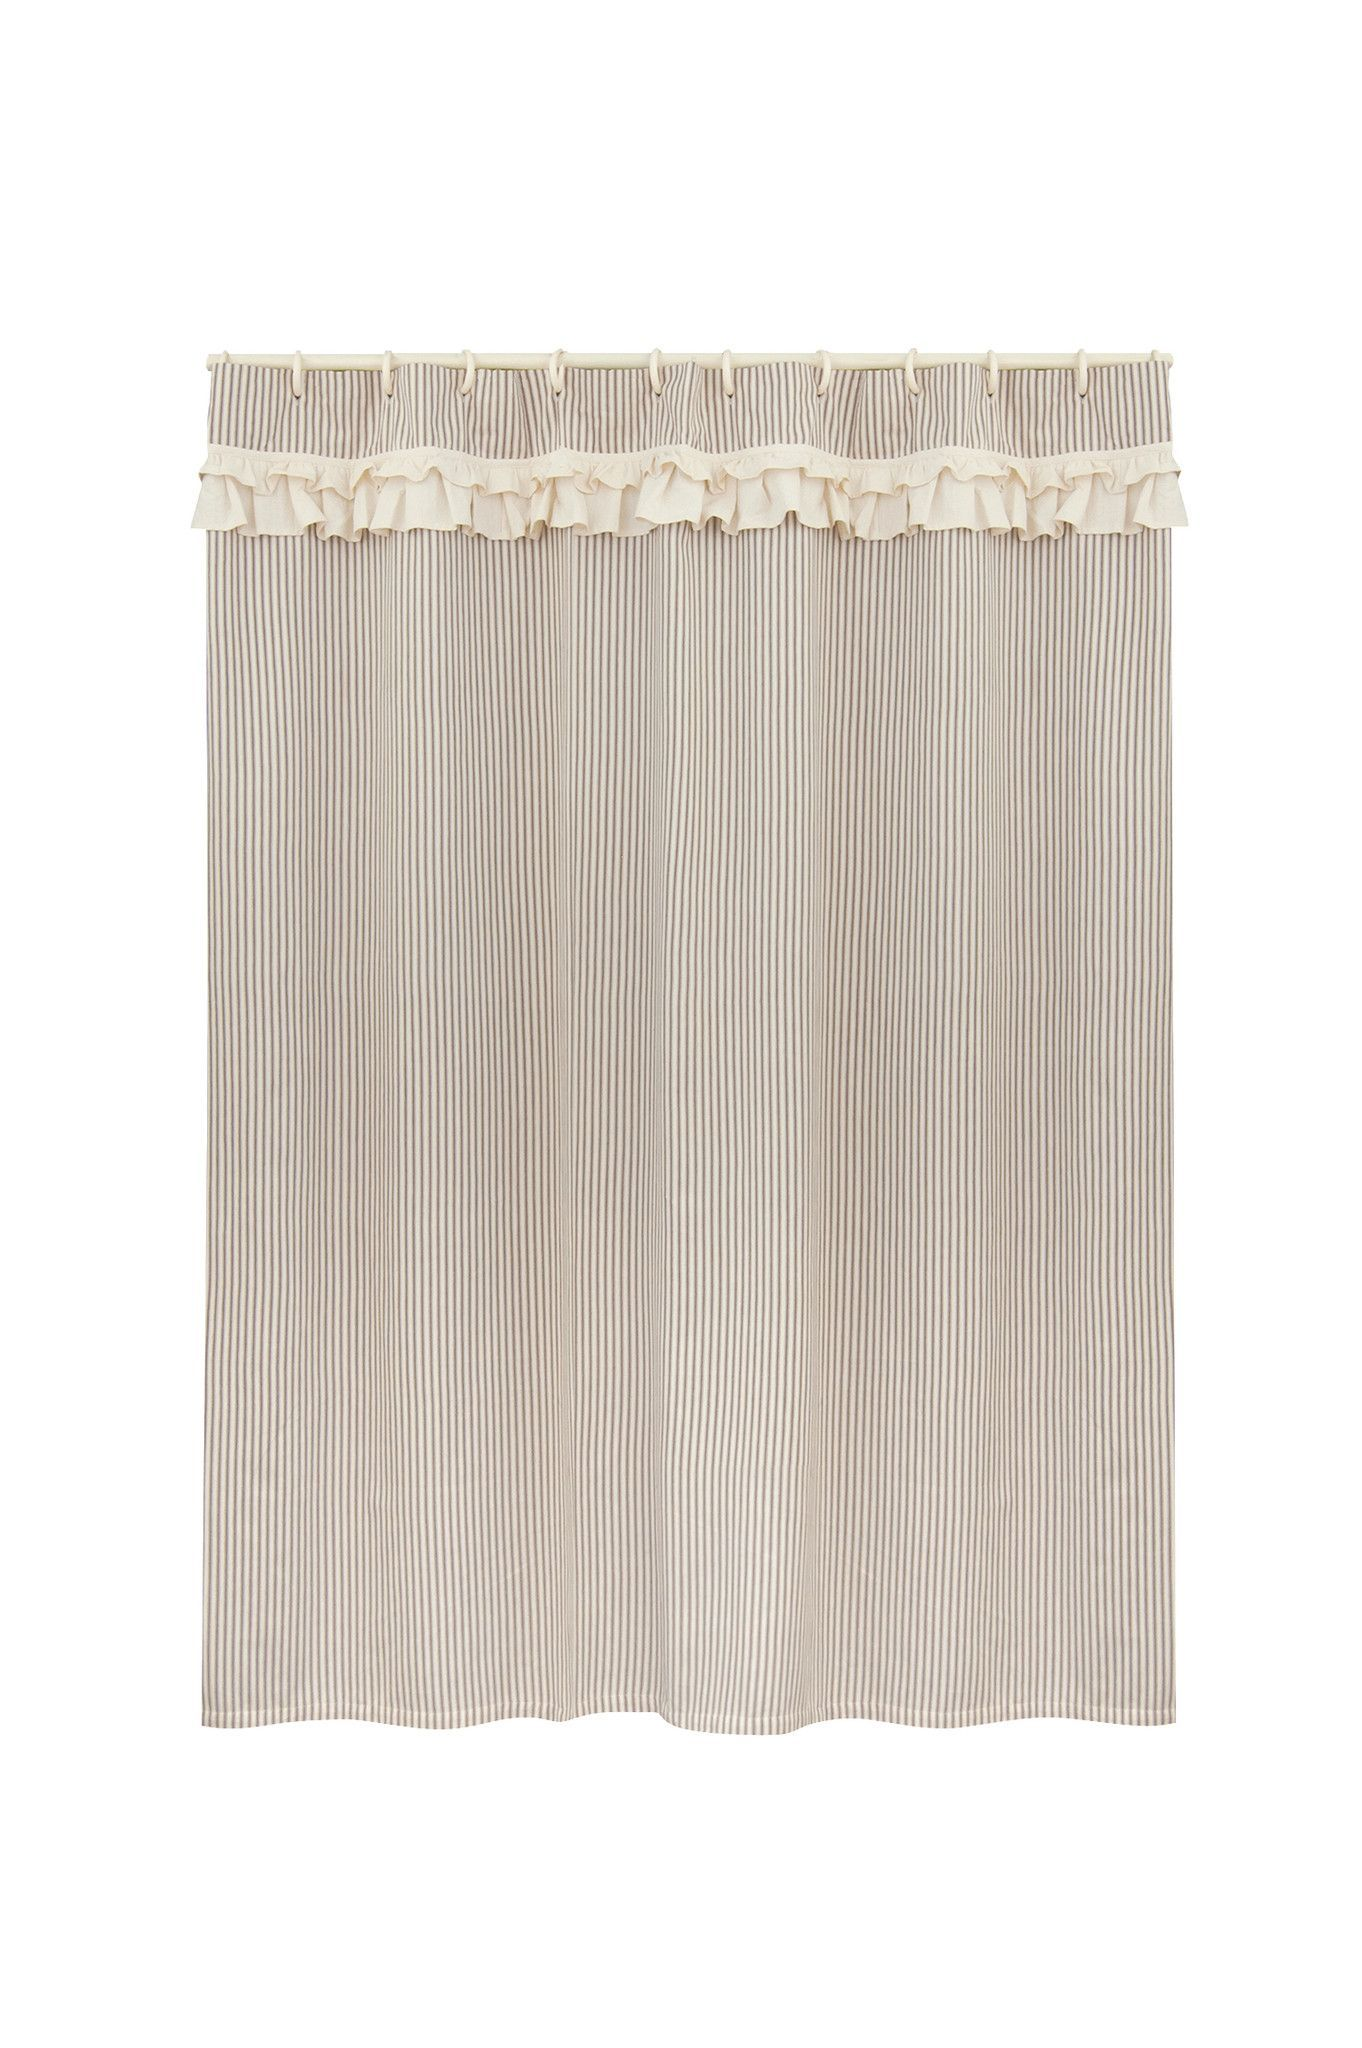 A Wonderful Addition To The Bath Our Downton Village Shower Curtain Combines A Classic Ticking Stripe With A Muslin